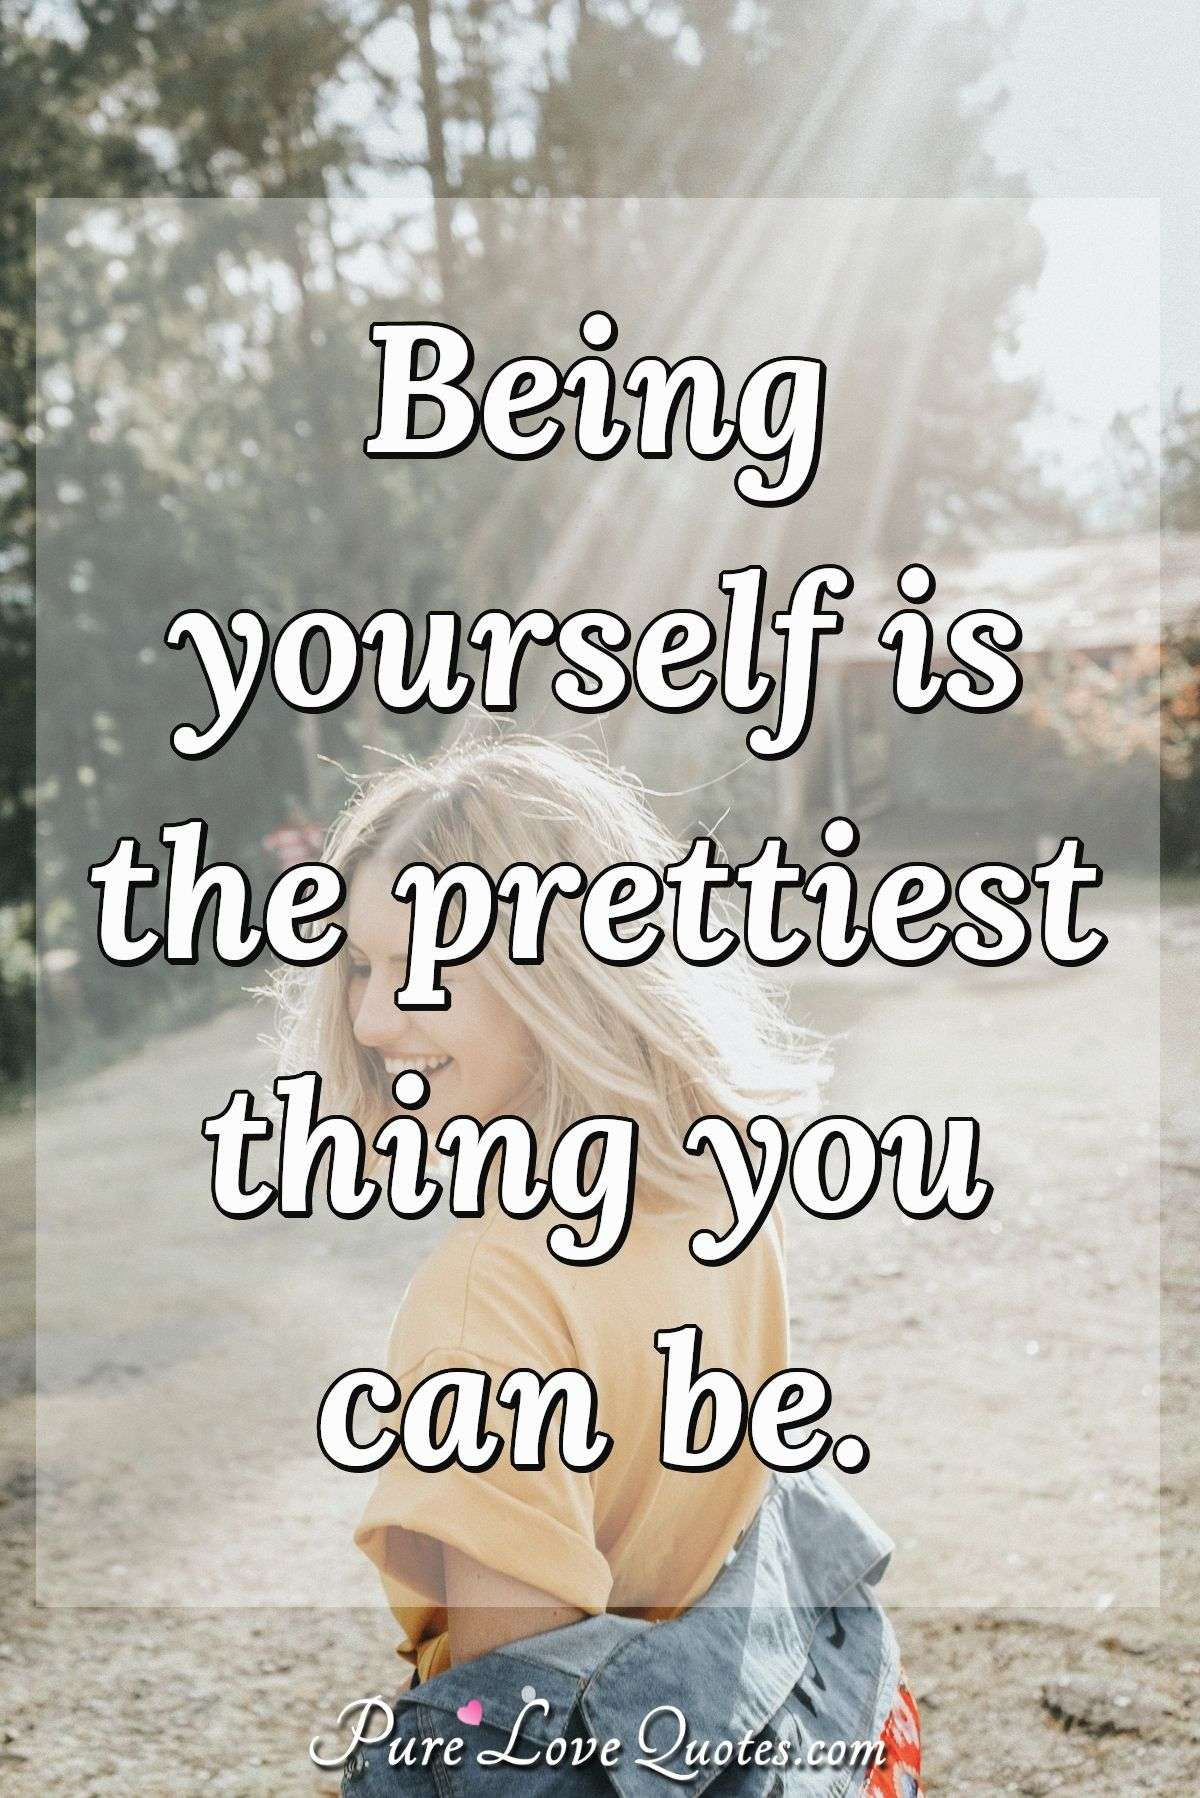 Being yourself is the prettiest thing you can be. - Anonymous